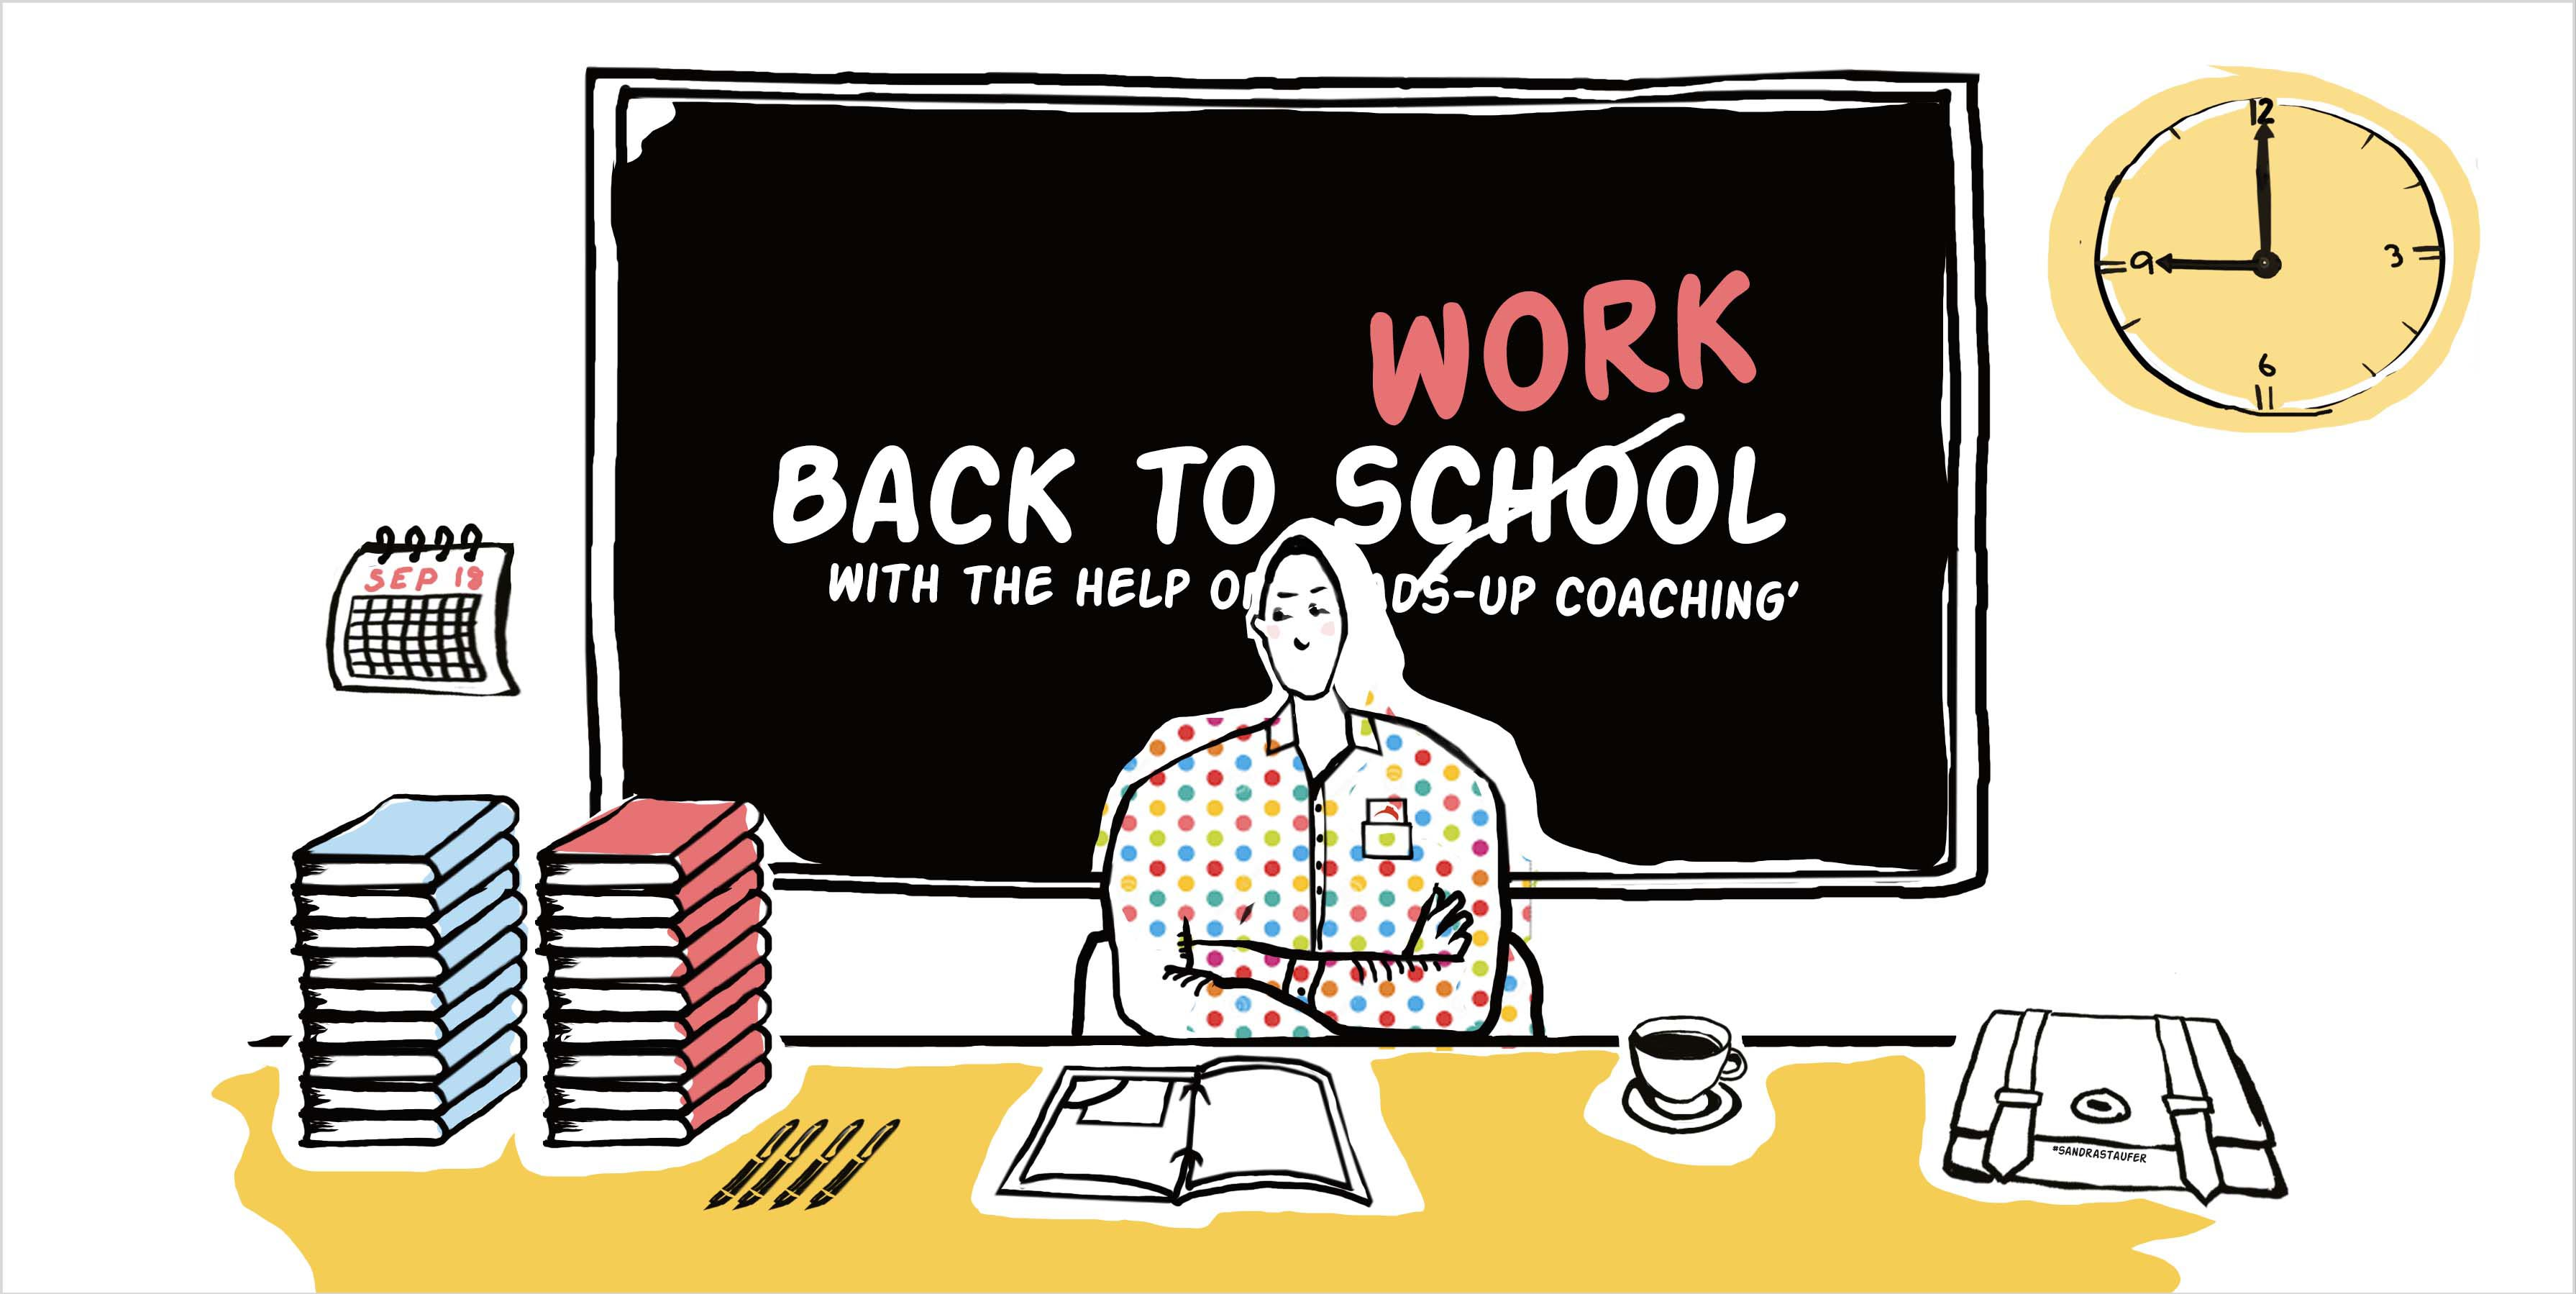 ILLUSTRATION BY SANDRA STAUFER FOR HEADS-UP COACHING